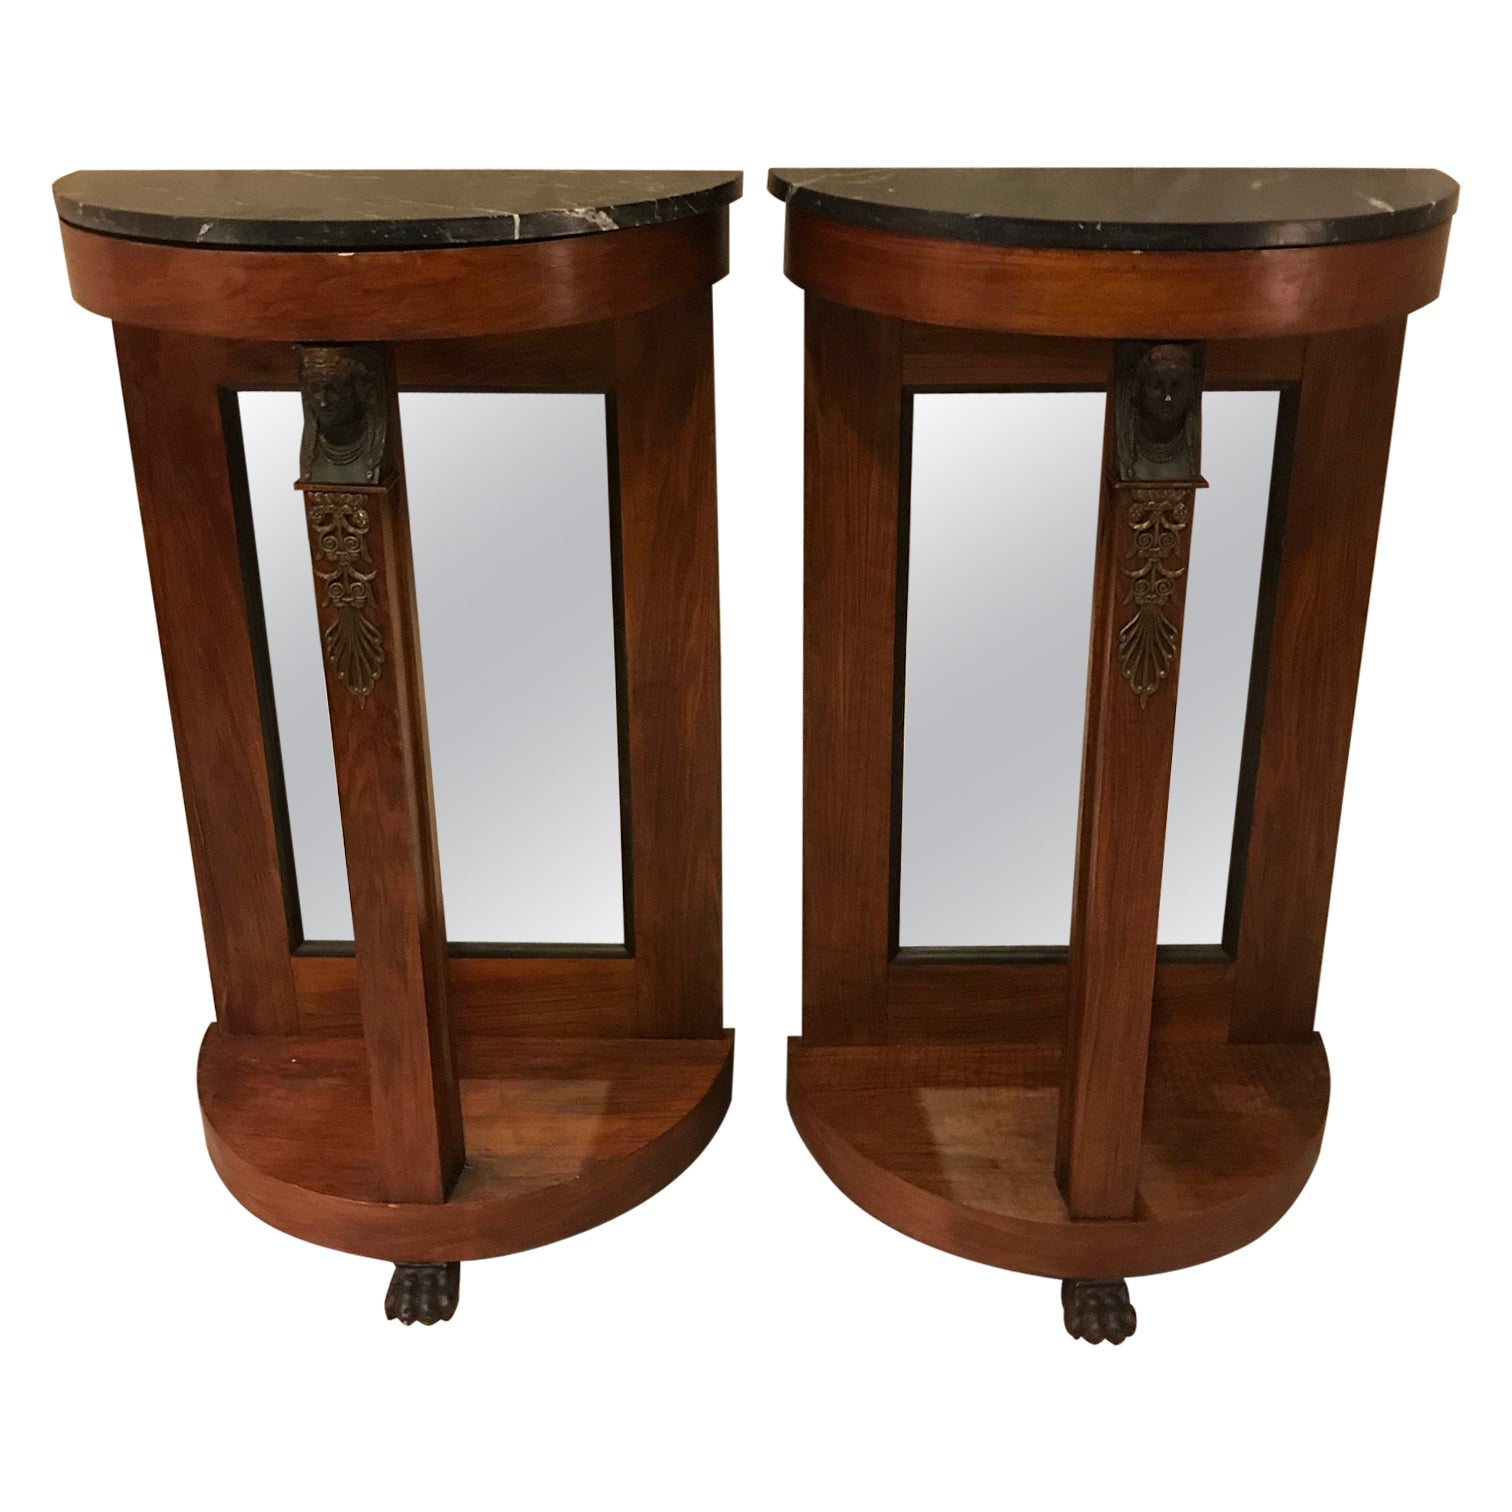 Early 19th Century Mahogany French Empire Style Pair of Demilune Console, 1920s